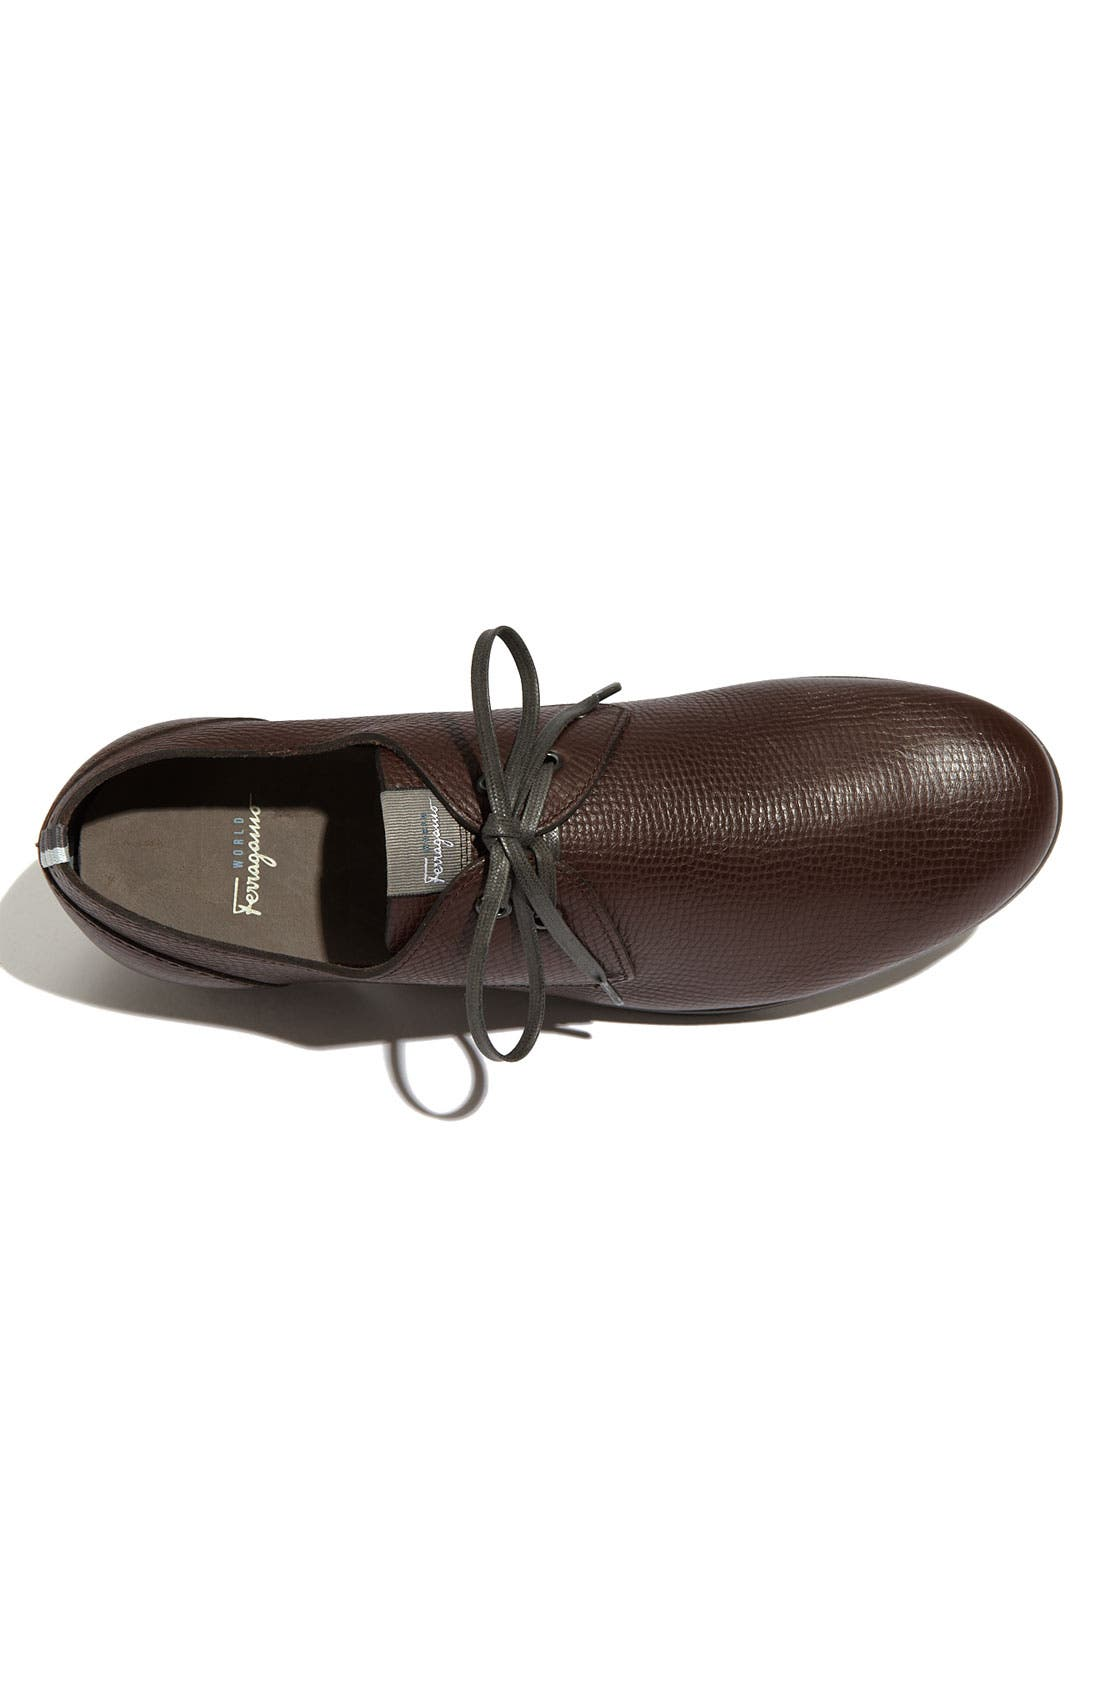 Alternate Image 3  - Salvatore Ferragamo 'Motion' Oxford